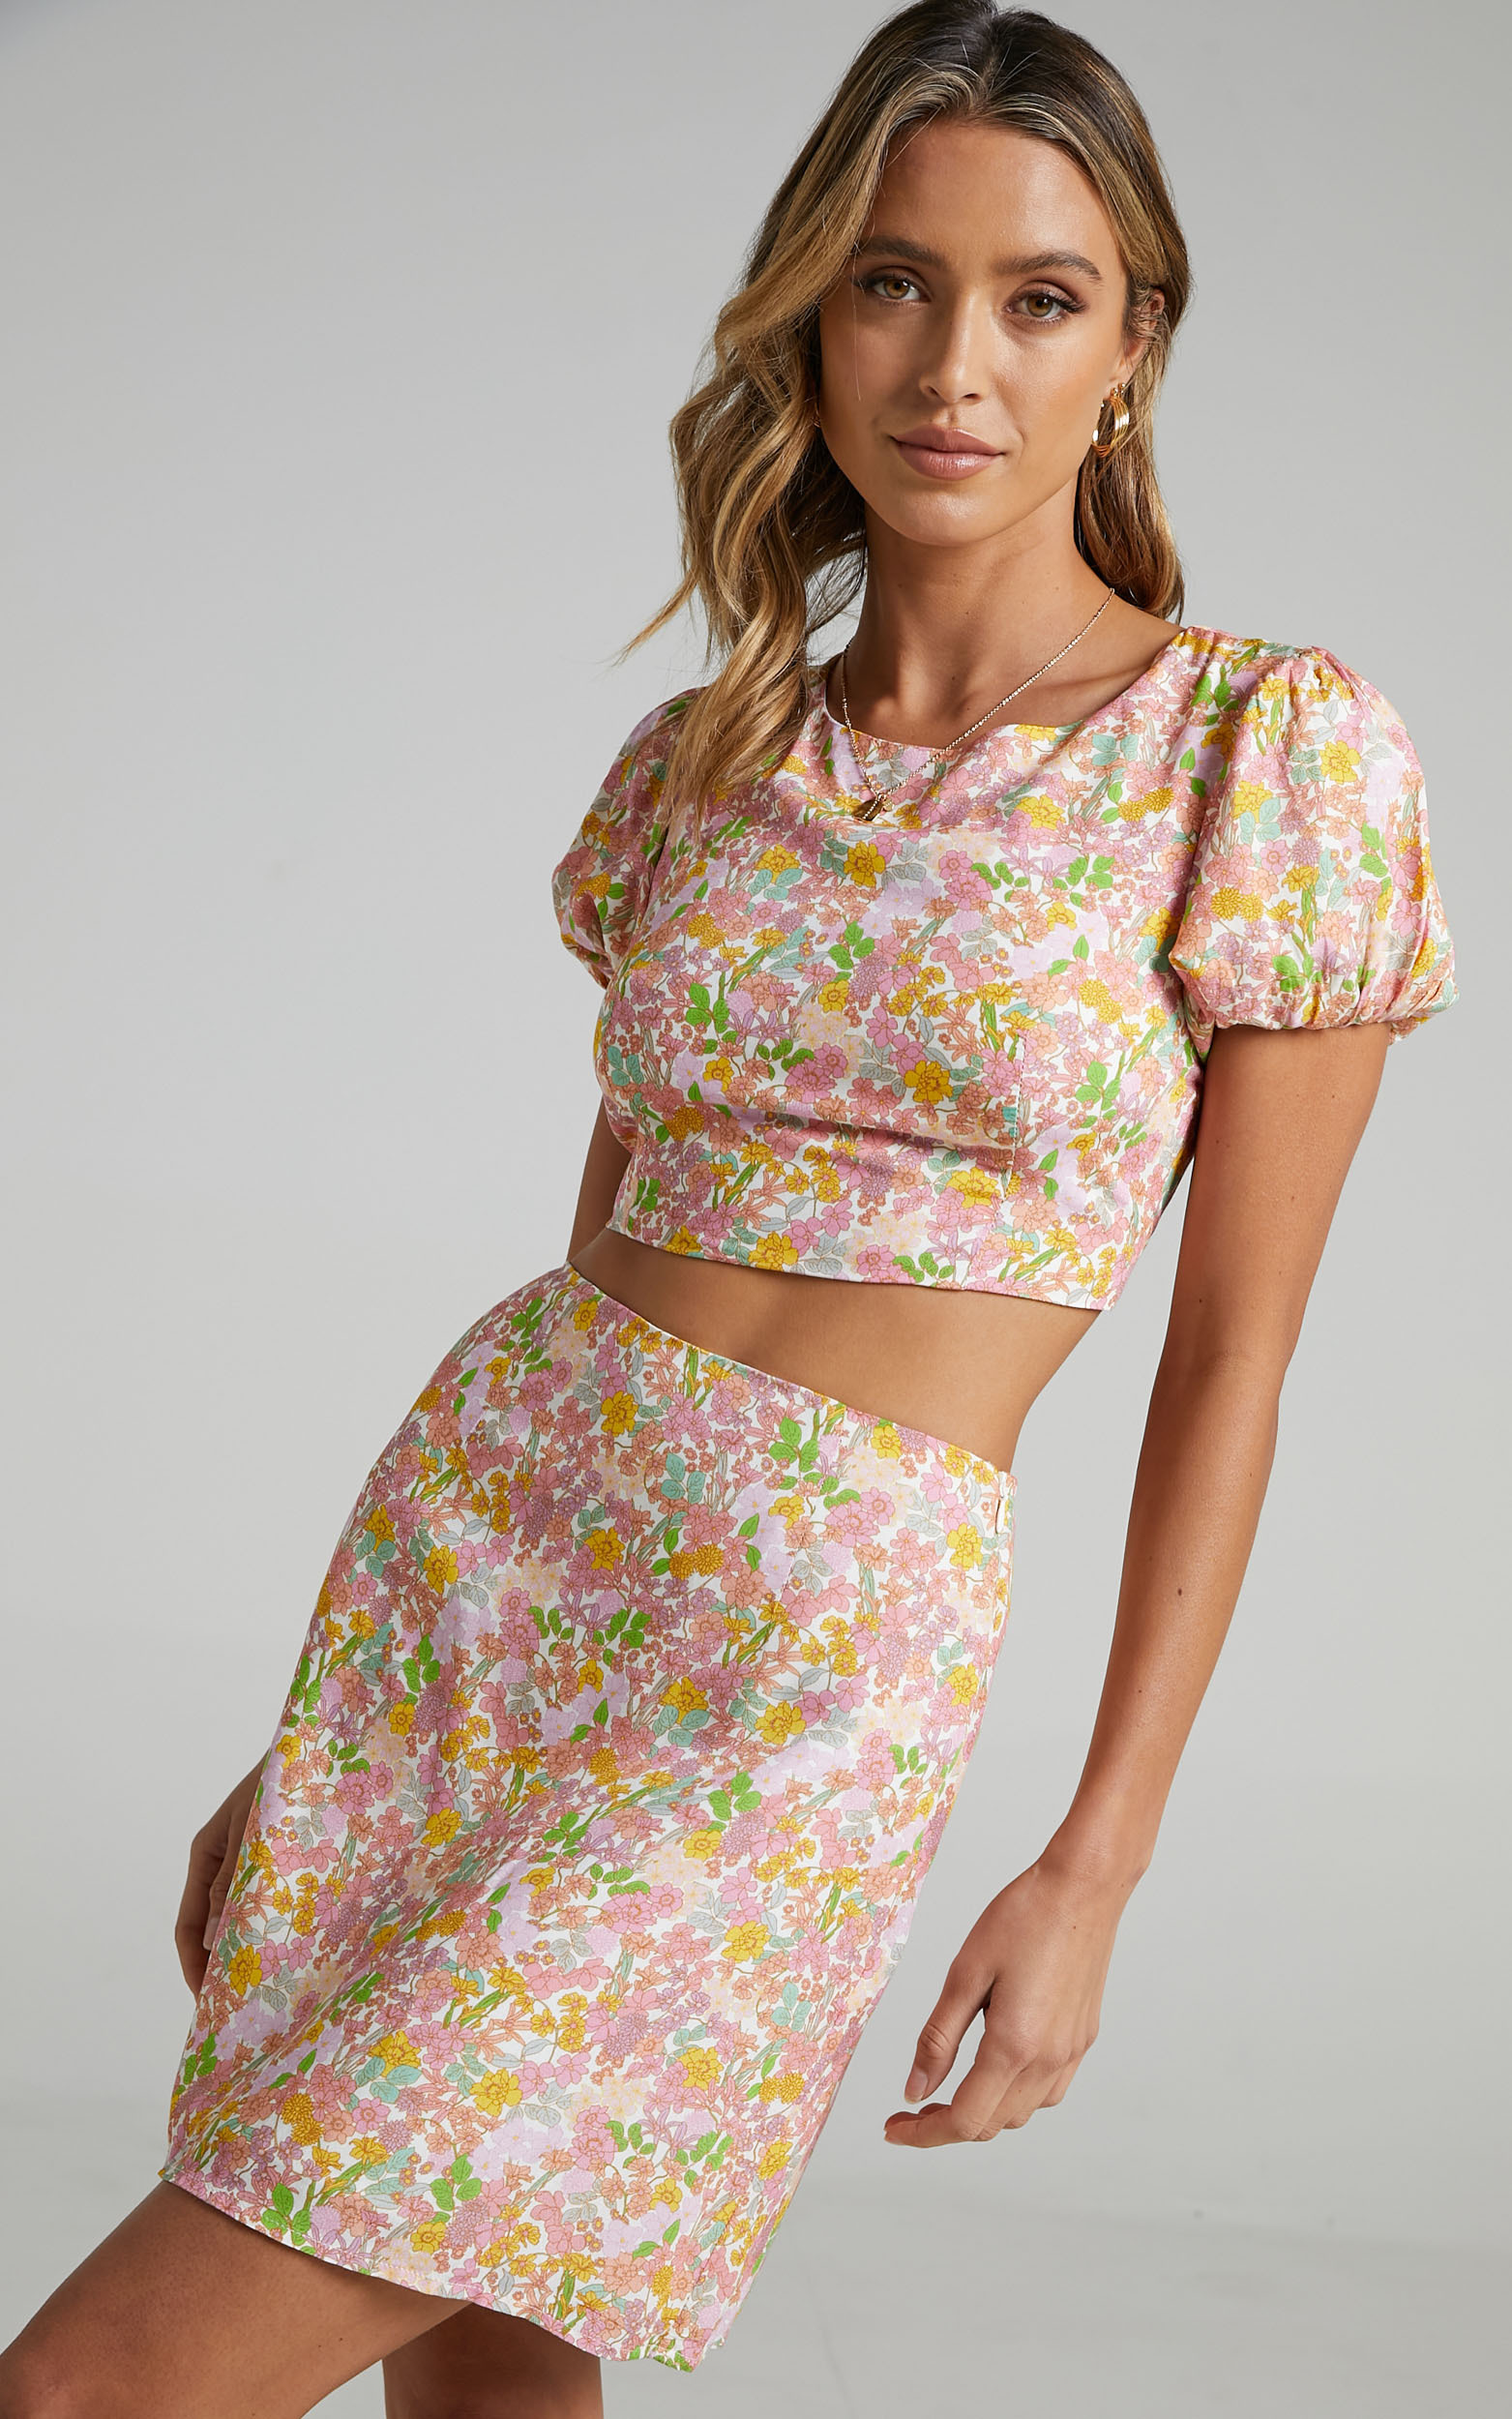 Caressa Two Piece Set in Flower Field - 06, PNK1, hi-res image number null